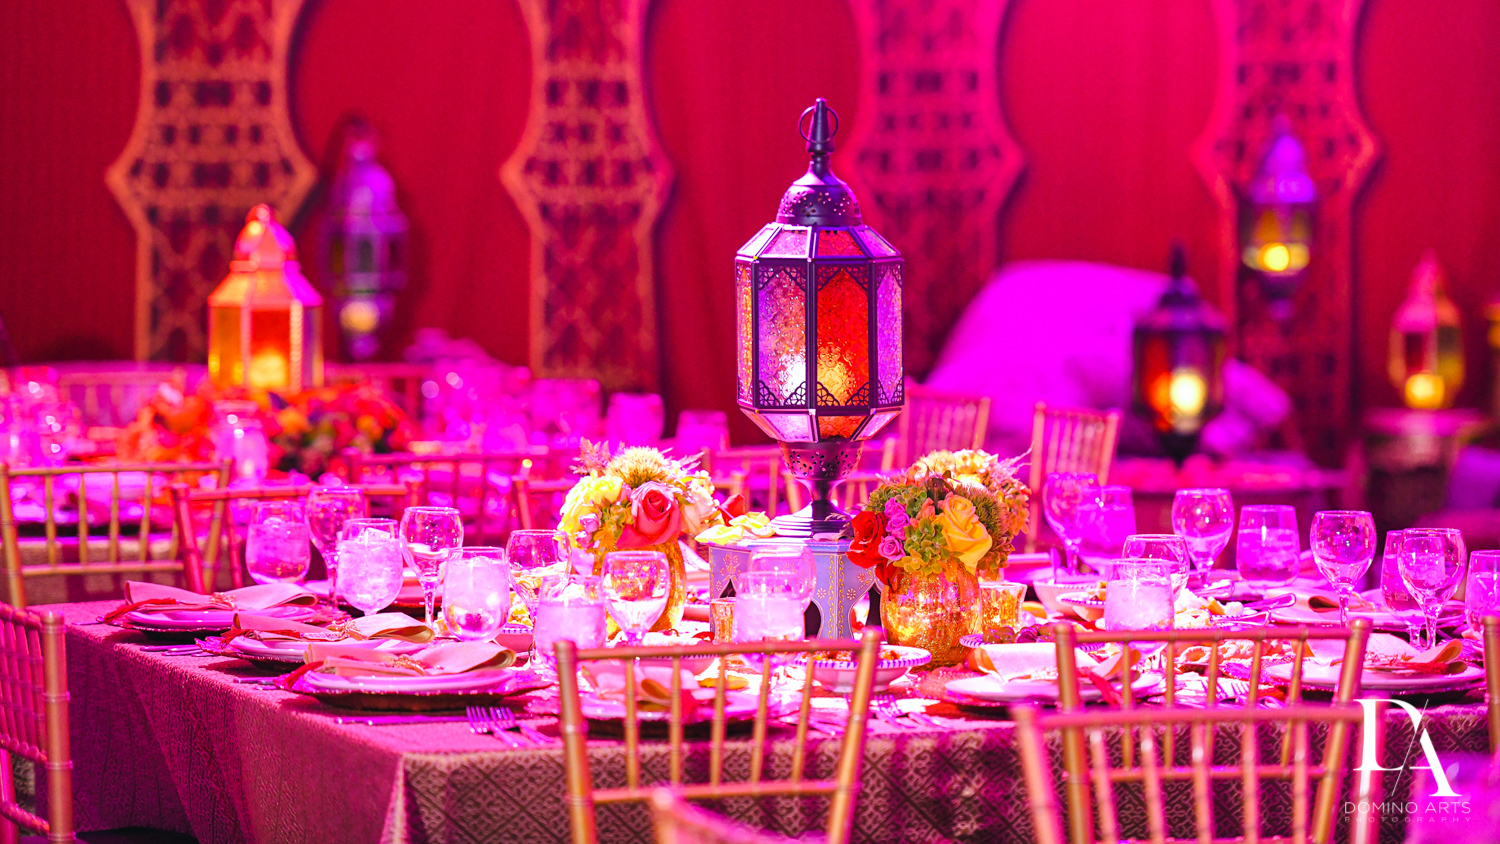 lamps at Authentic Morrocan Jewish Henna Party by Domino Arts Photography